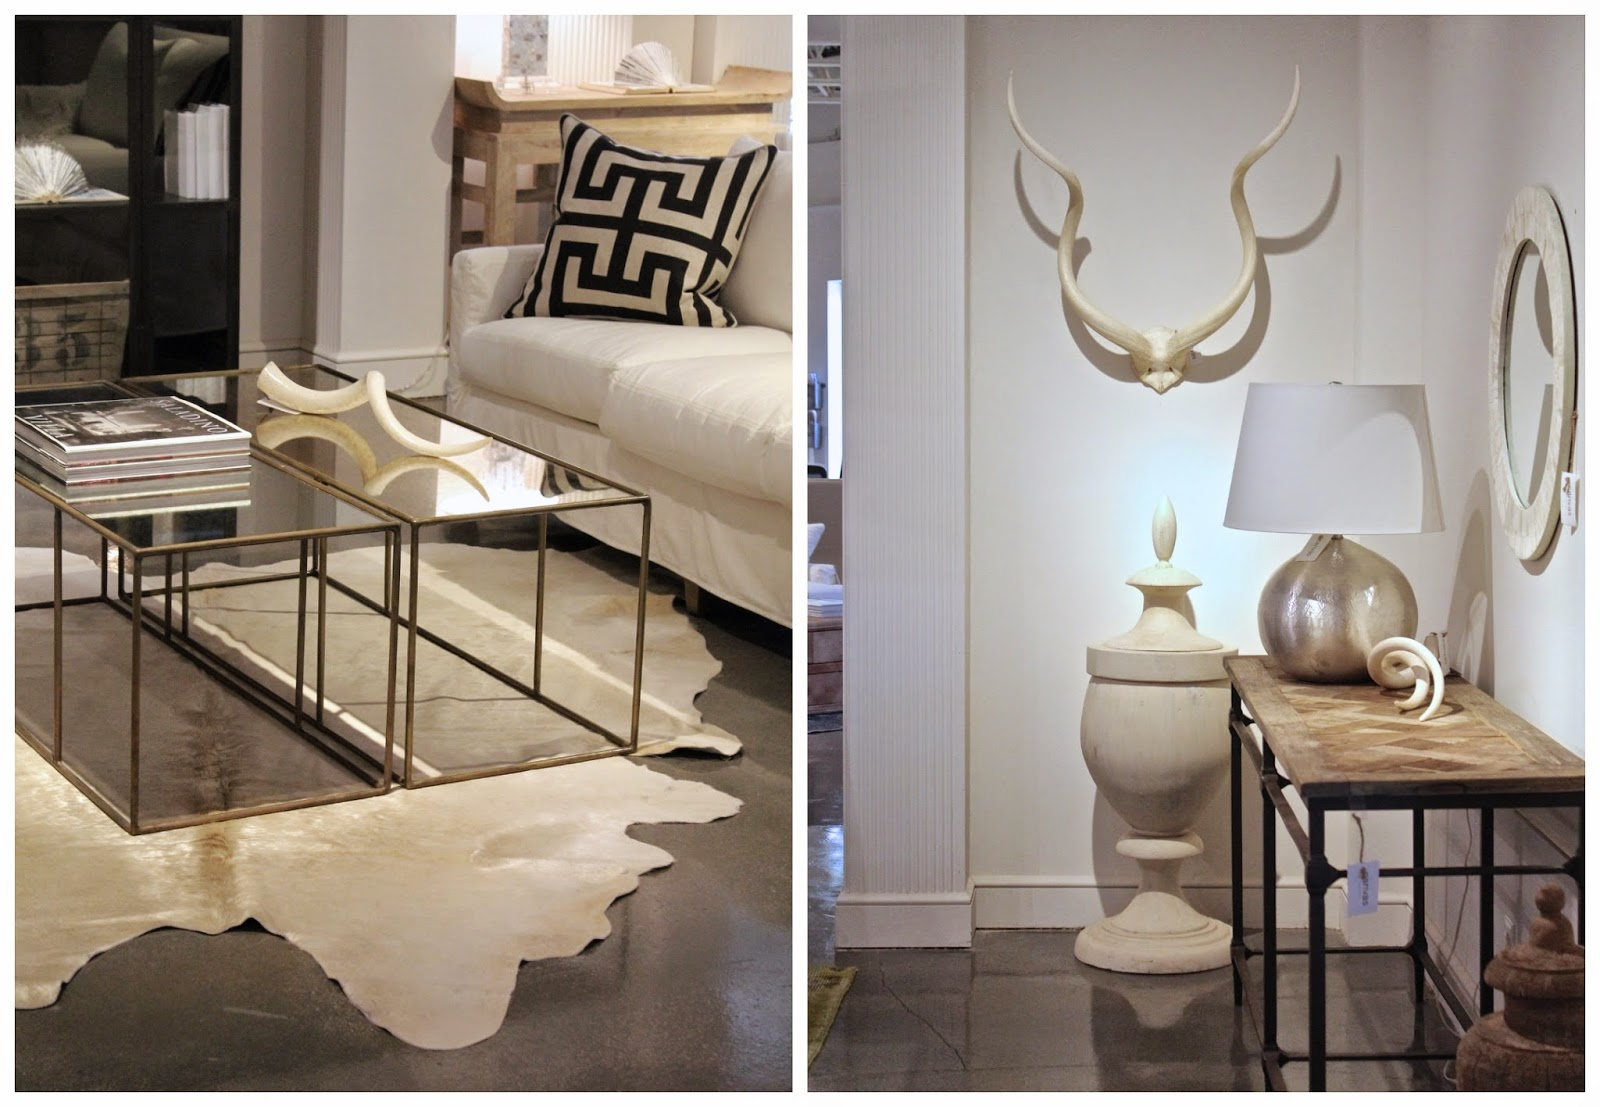 Delightful Hopefully That Translates To Something You Can Relate To. A Lot Of What We  Love And Find Organically For Our Own Home Ends Up In The Canvas Interiors  Mix.